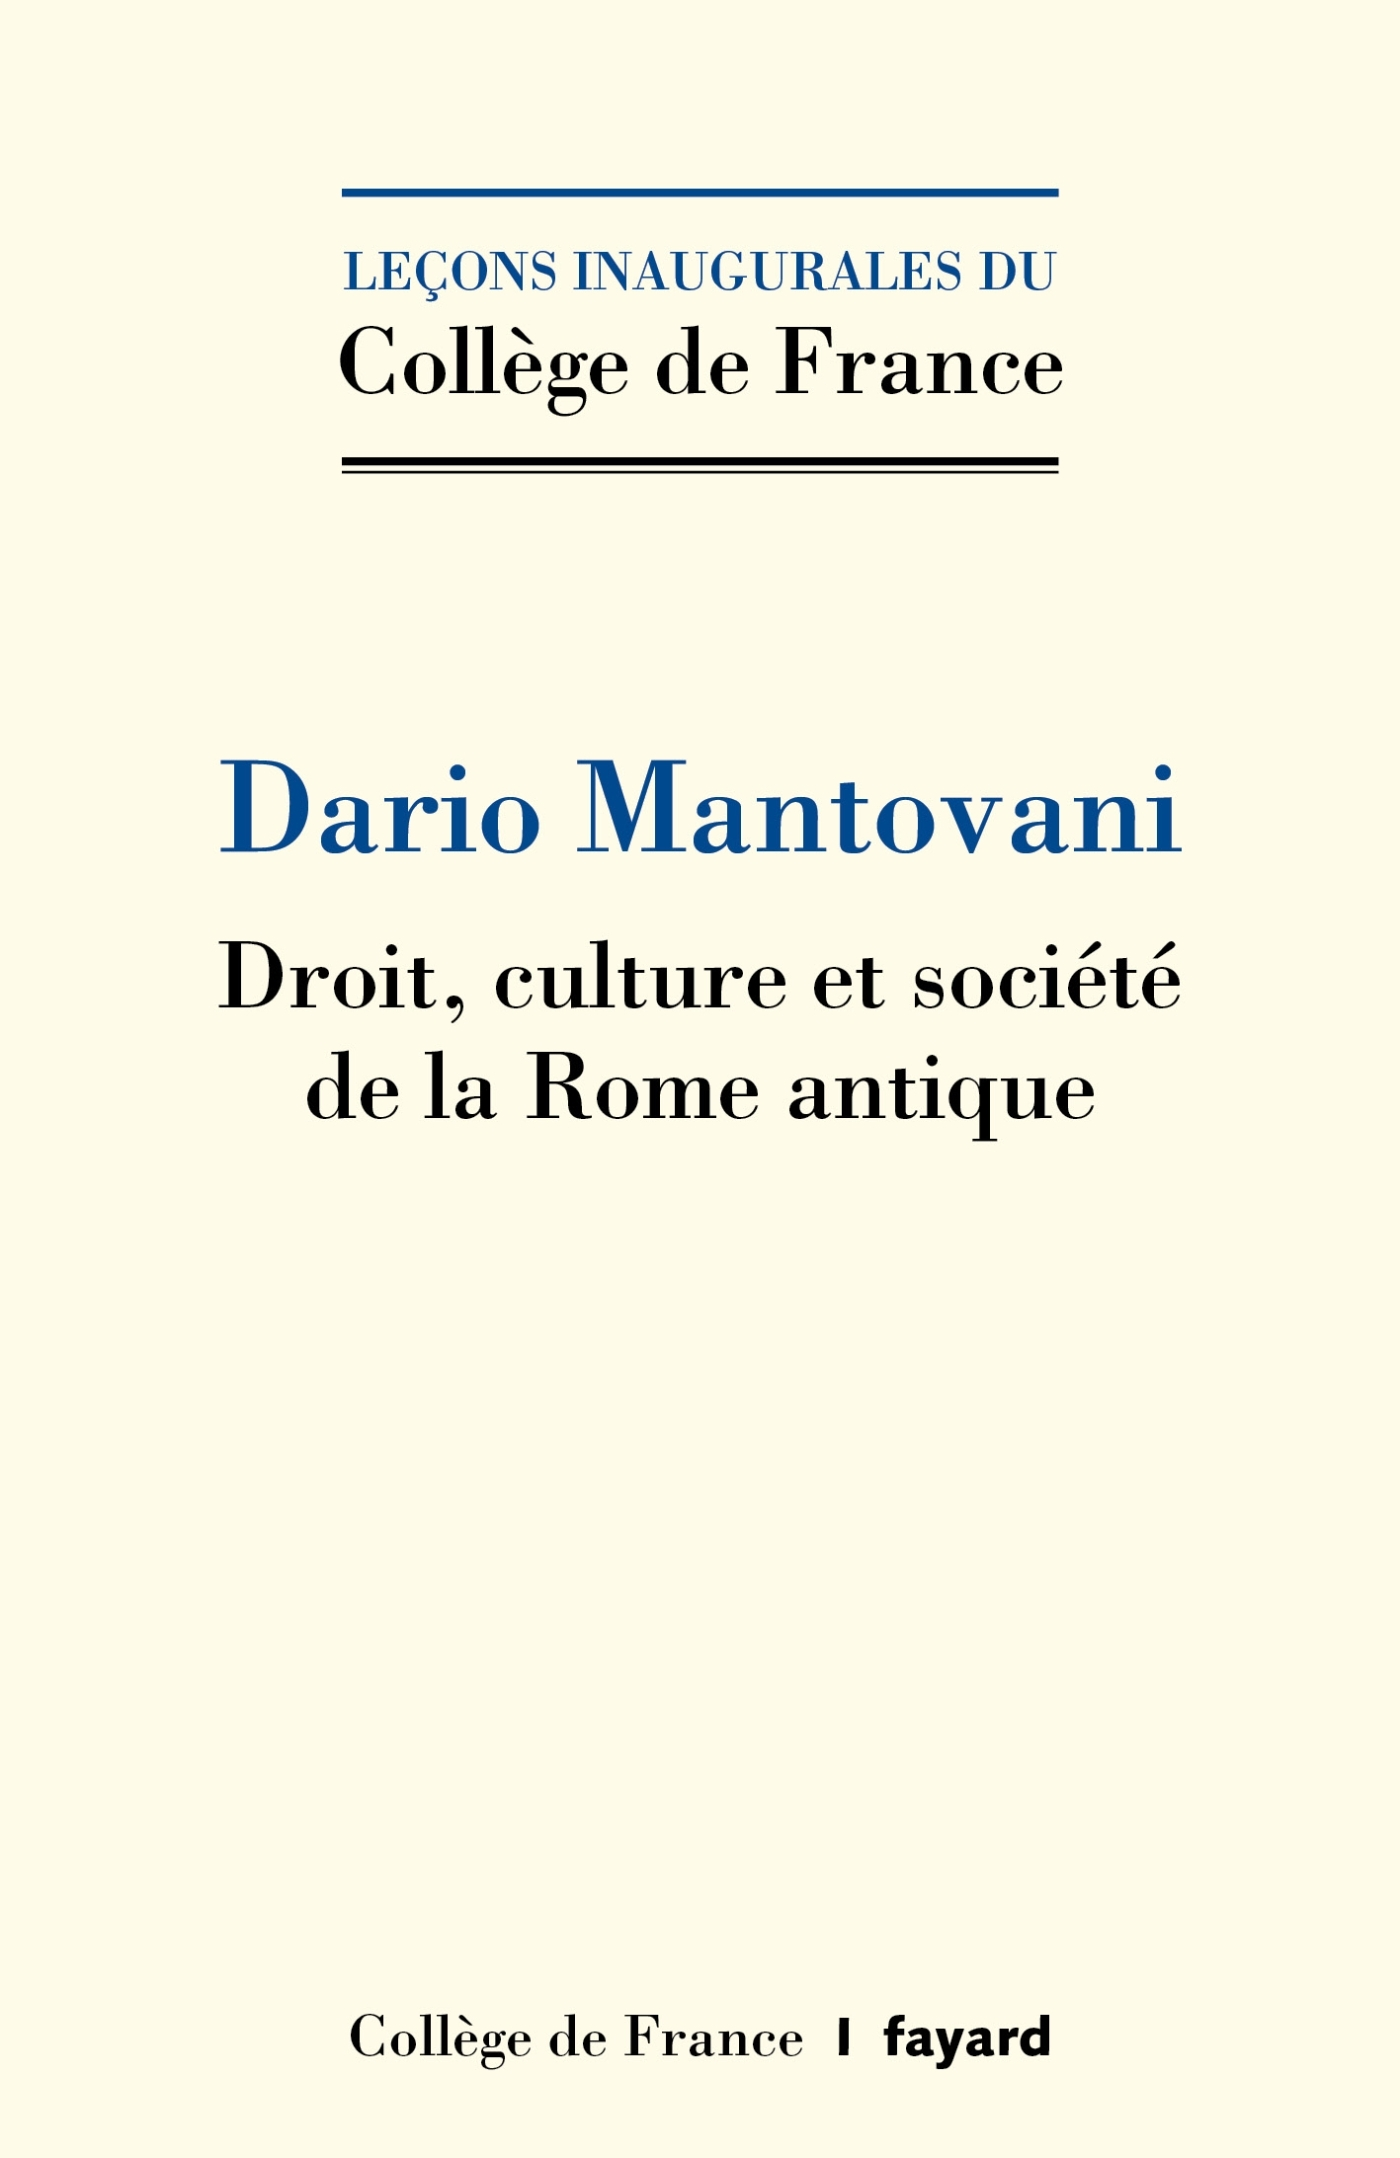 DROIT, CULTURE ET SOCIETE DE LA ROME ANTIQUE